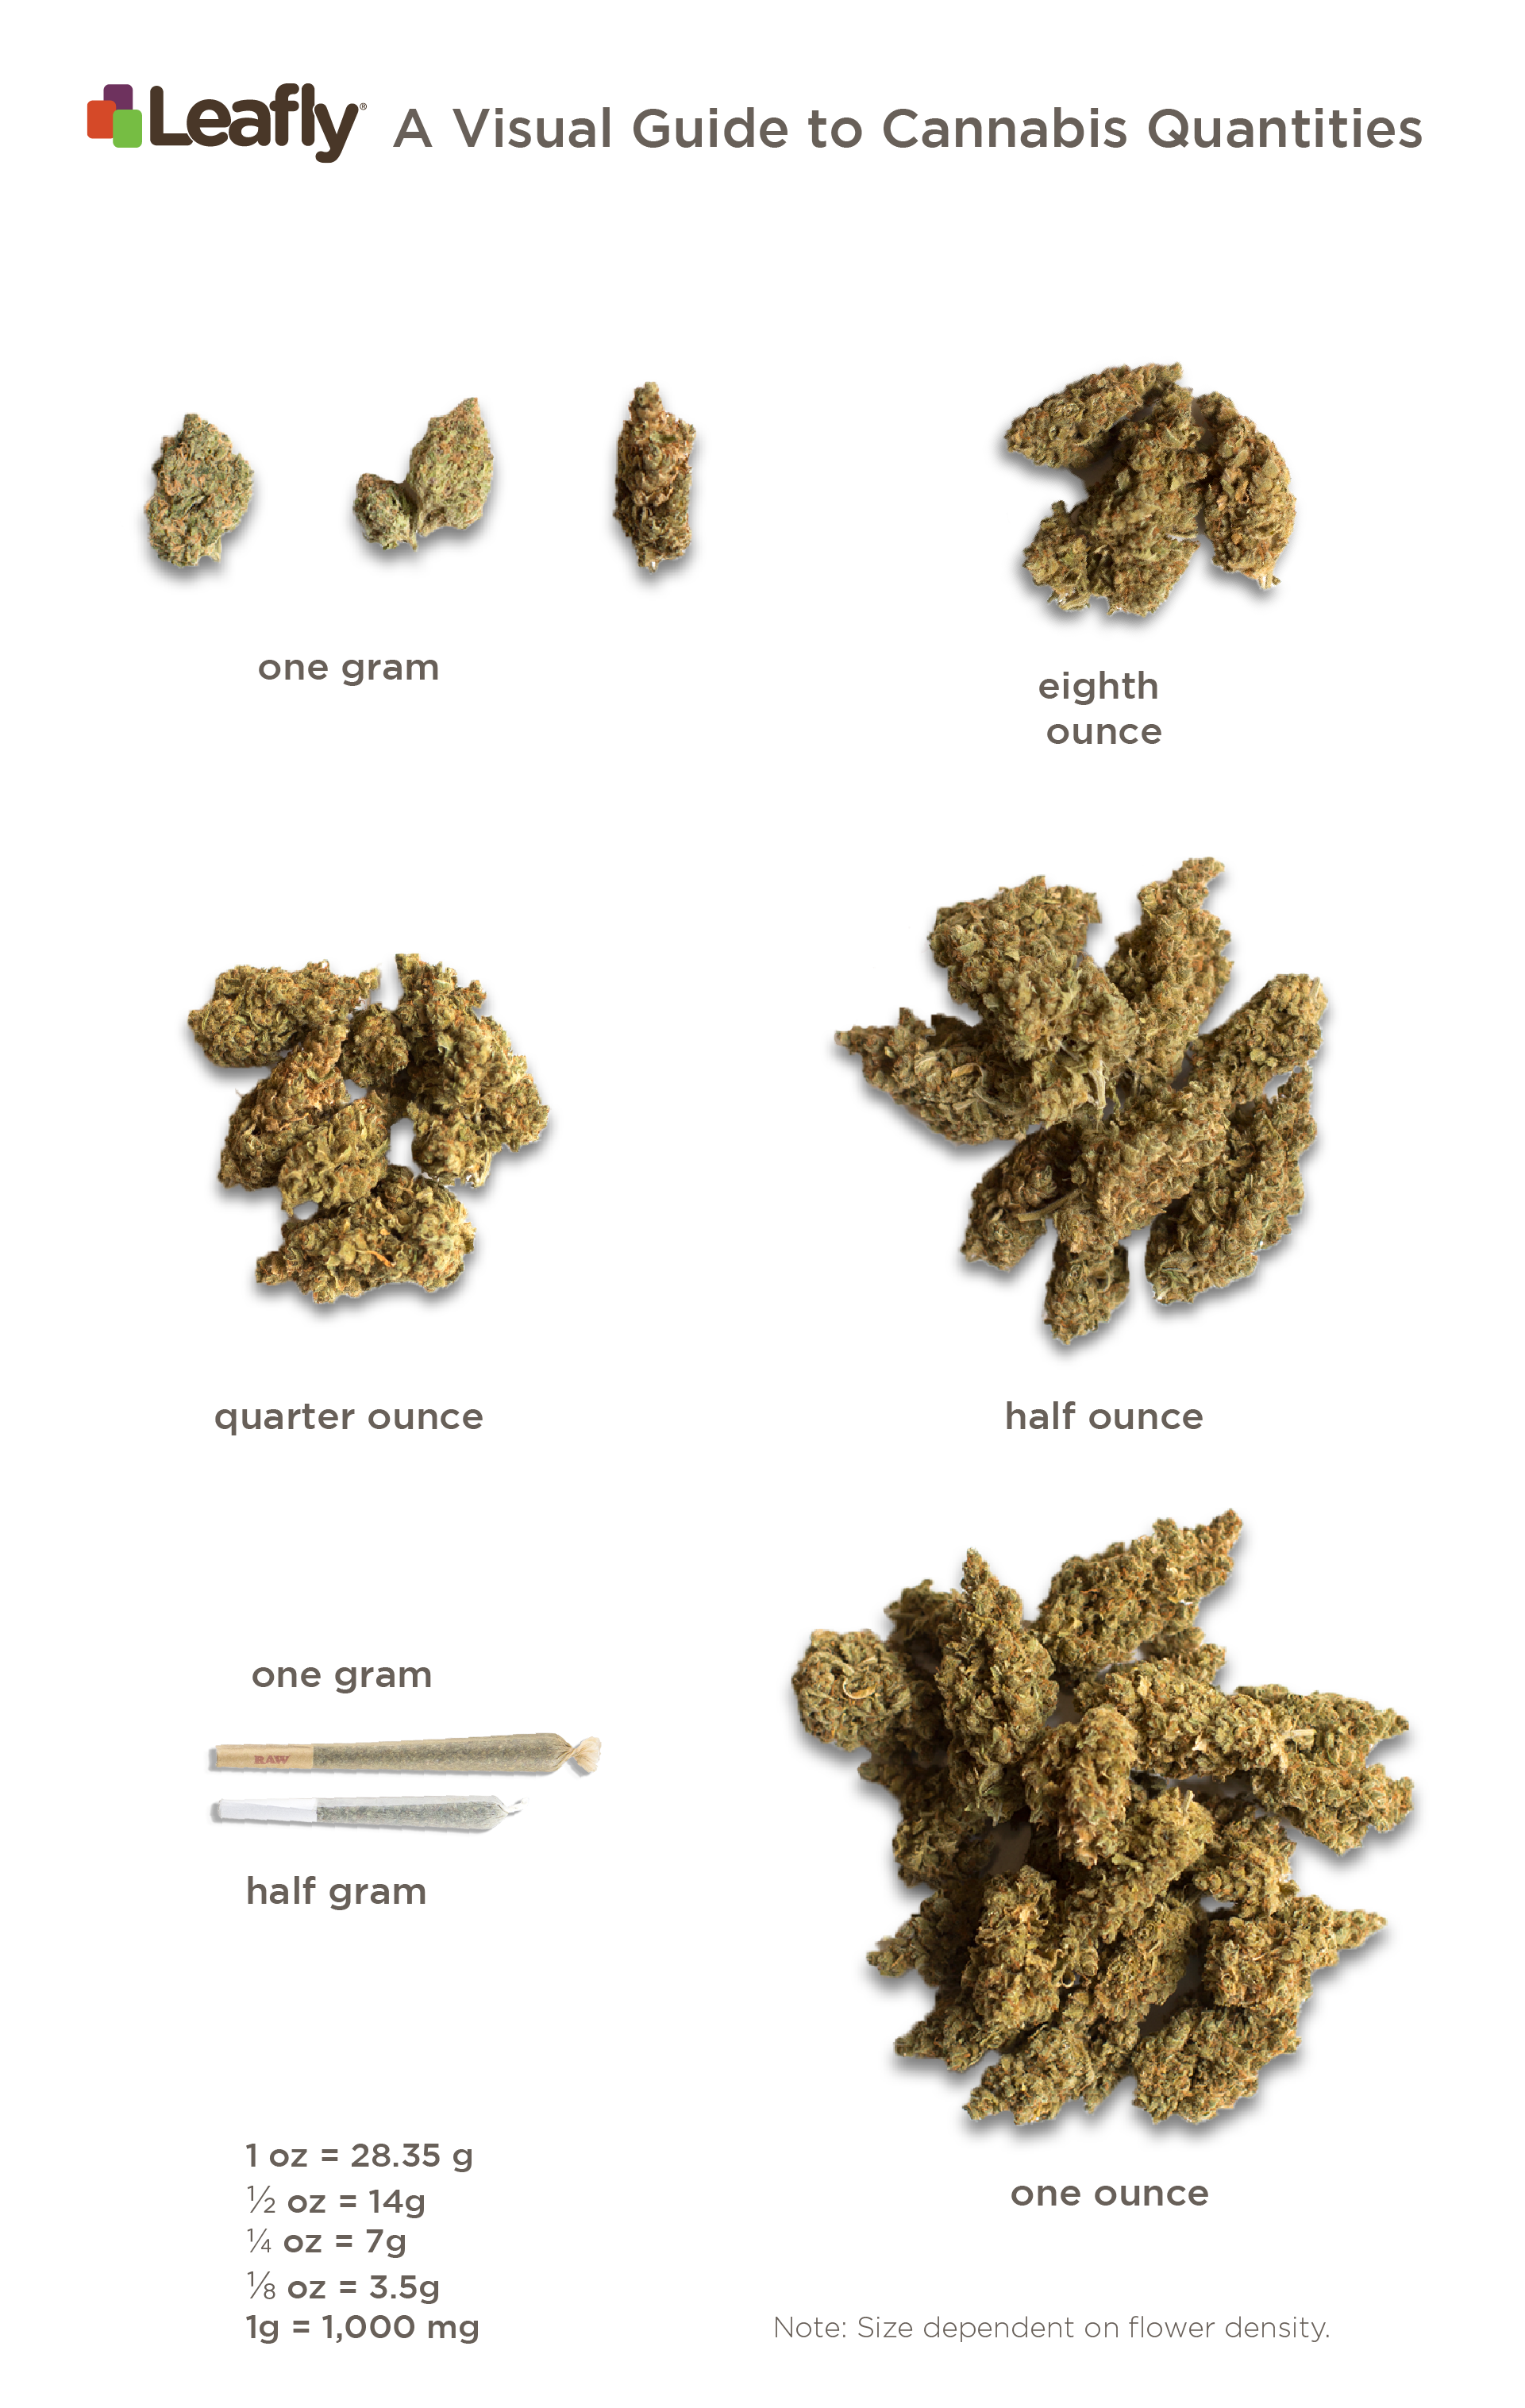 Cannabis quantity range by weight, from one gram to an eighth-ounce, quarter-ounce, half-ounce, and ounce. There's also a comparison of a half-gram and full-gram pre-rolled joints.